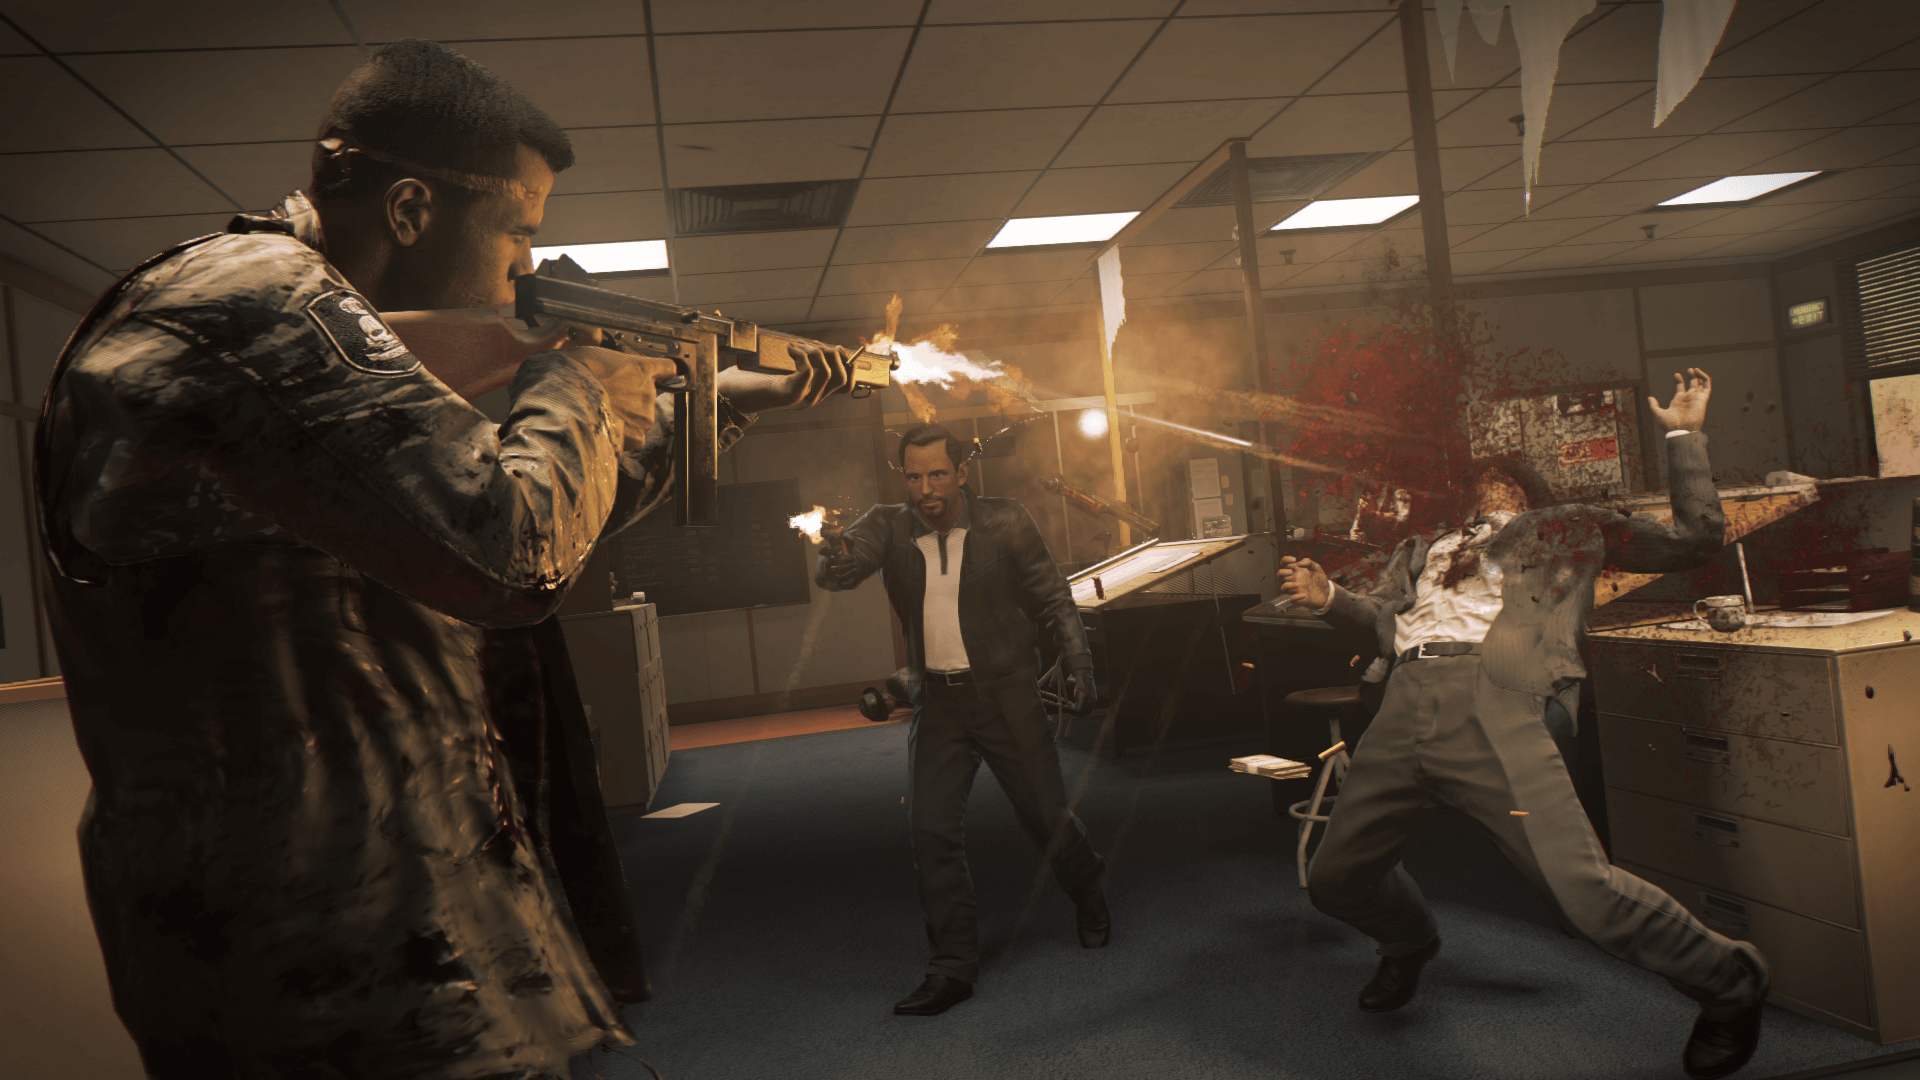 3050342 mafia3 officetakedown 06 New Mafia 3 Video Shows How To Make Money (Violently)